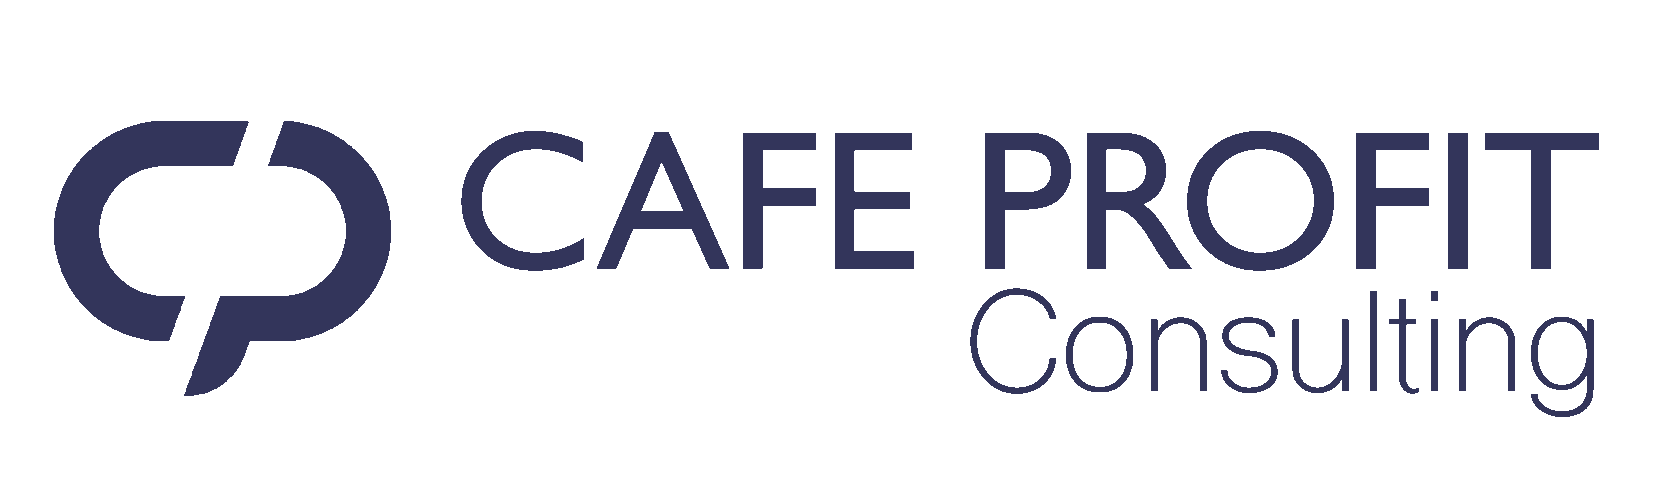 Cafe Profit Consulting